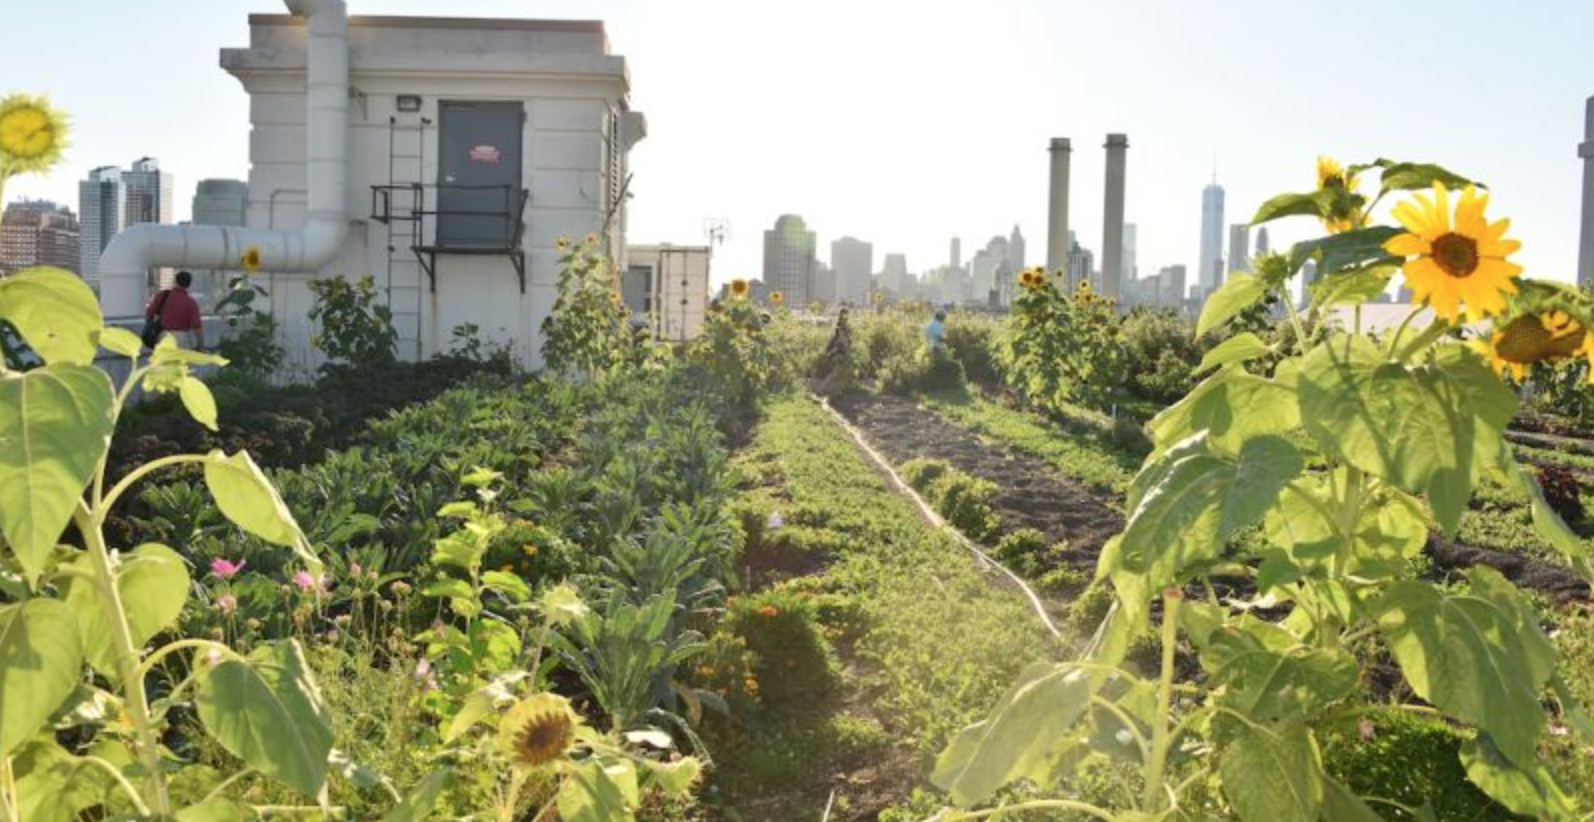 Brooklyn Grange's rooftop farm boasts organic tomatoes, peppers, kale, roots, herbs and other seasonal crops.